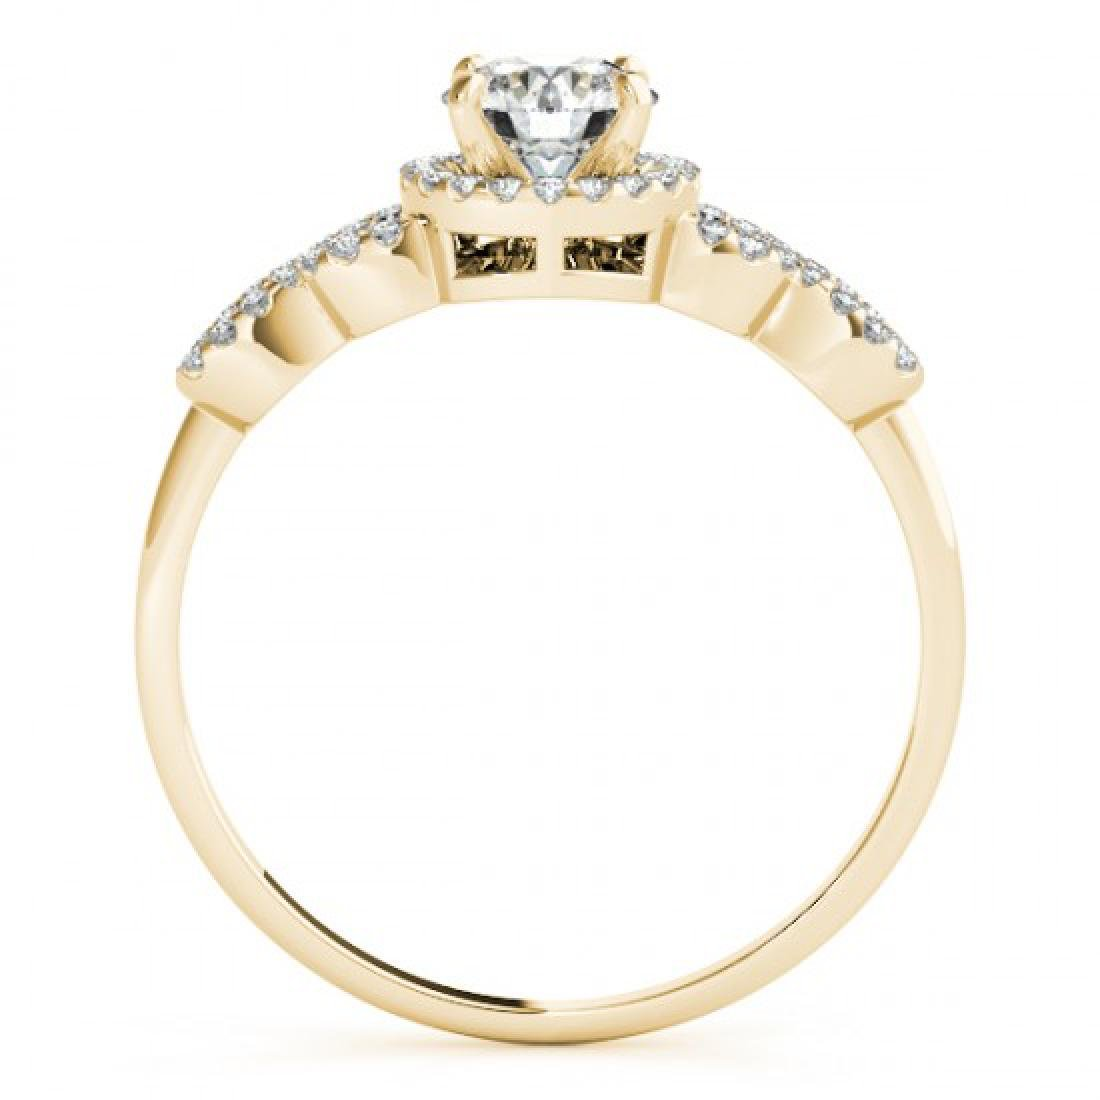 1.08 CTW Certified VS/SI Diamond Solitaire Ring 14K - 2